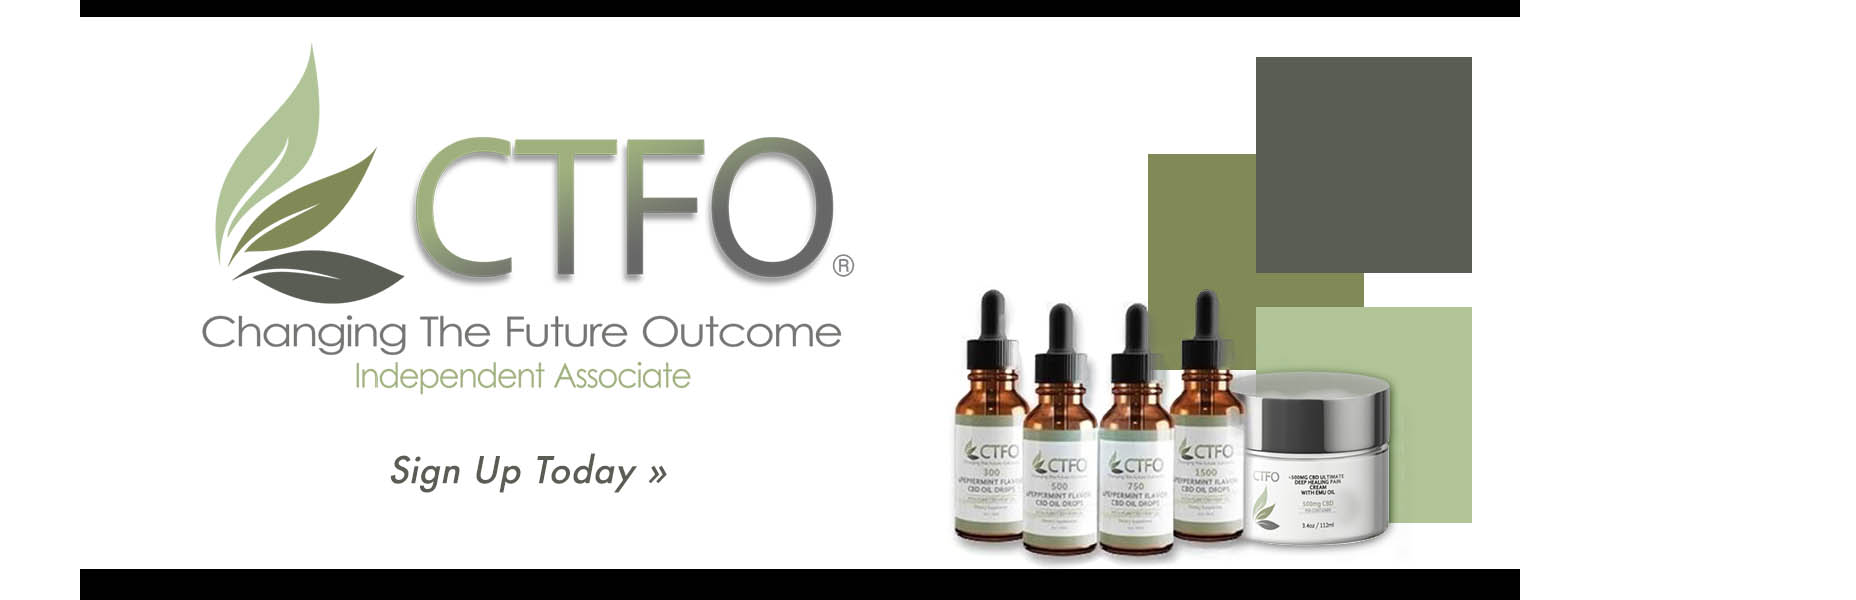 Sign Up For CBD Today